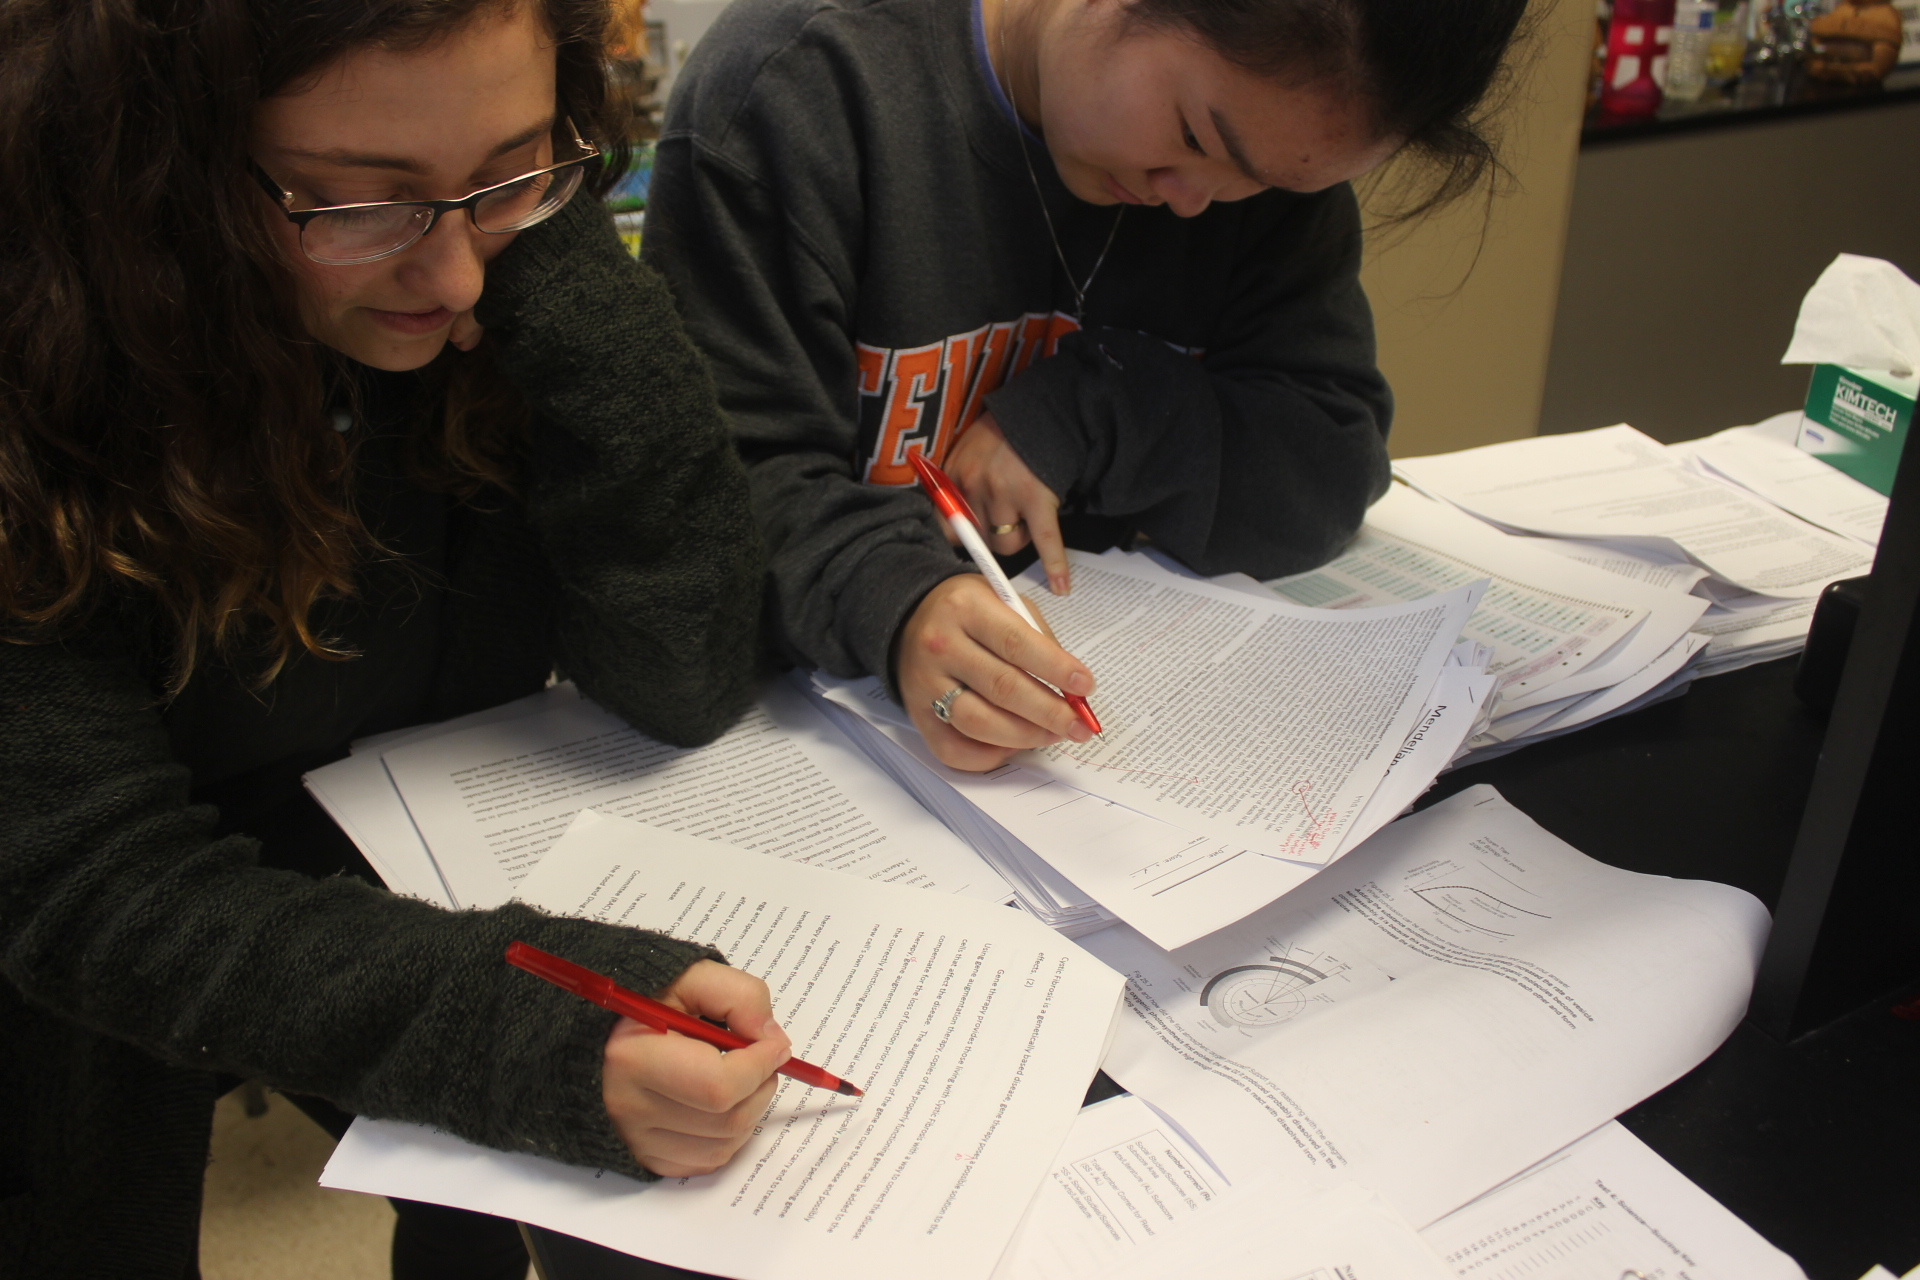 Kirsten Todd (12) and Shannon Donlon (12) proofreading papers.